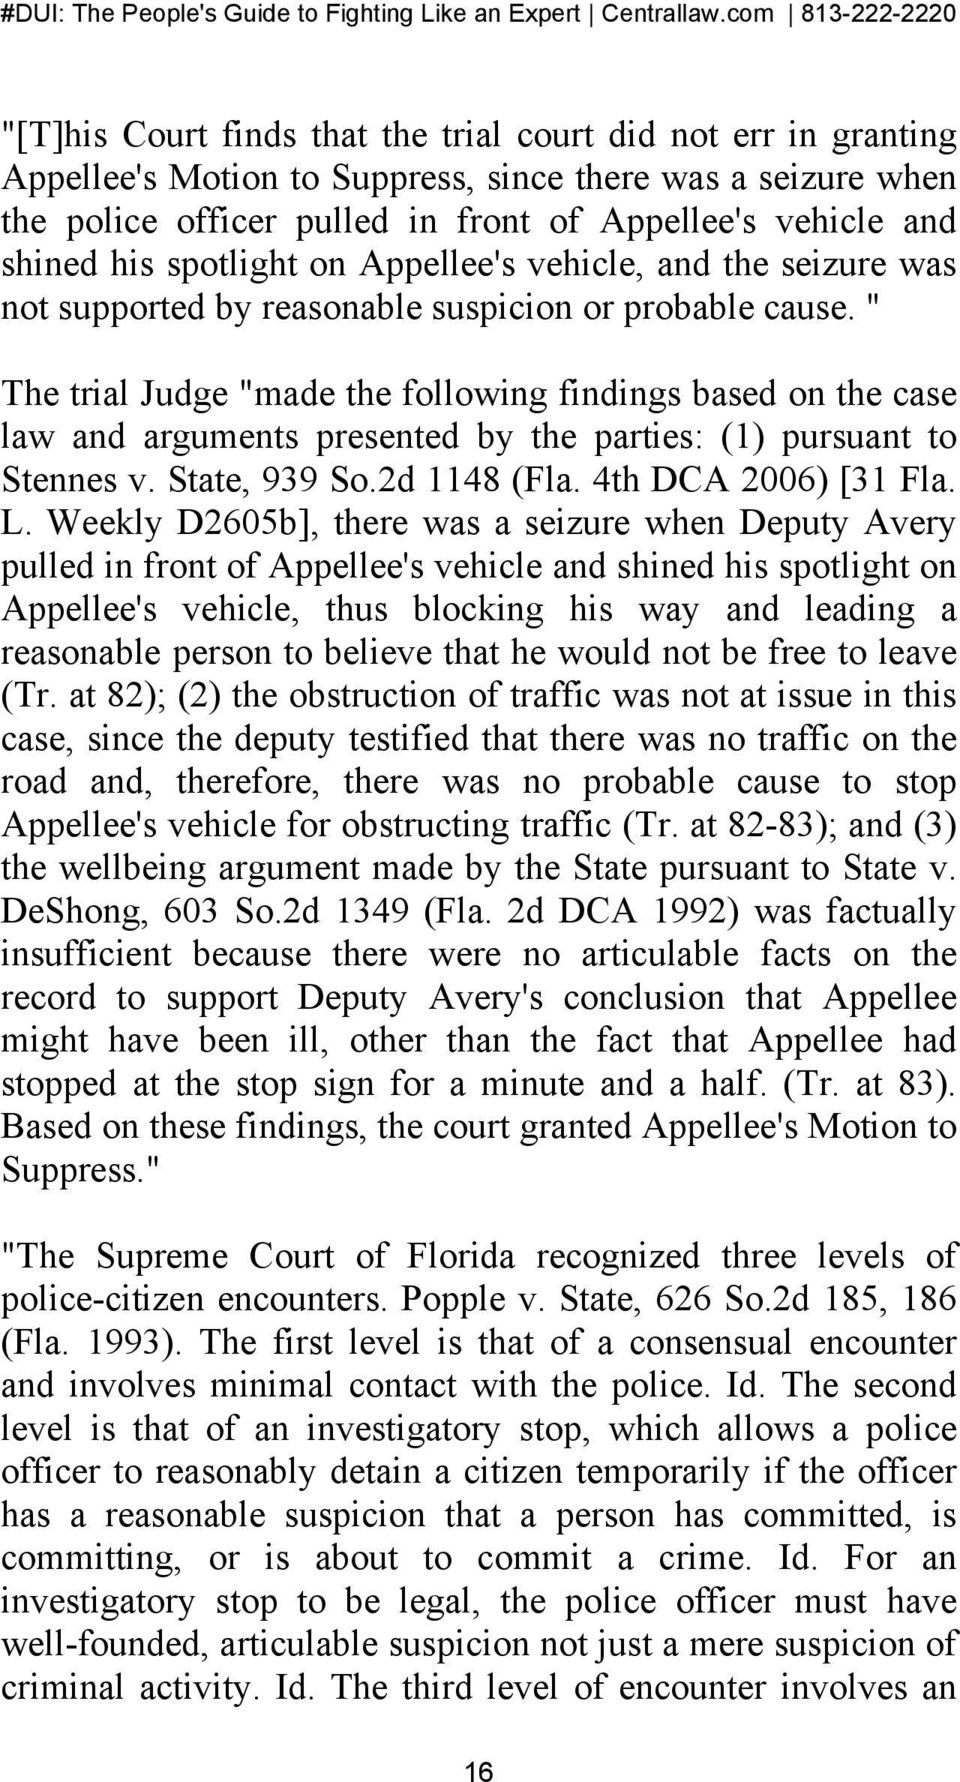 """ The trial Judge ""made the following findings based on the case law and arguments presented by the parties: (1) pursuant to Stennes v. State, 939 So.2d 1148 (Fla. 4th DCA 2006) [31 Fla. L."